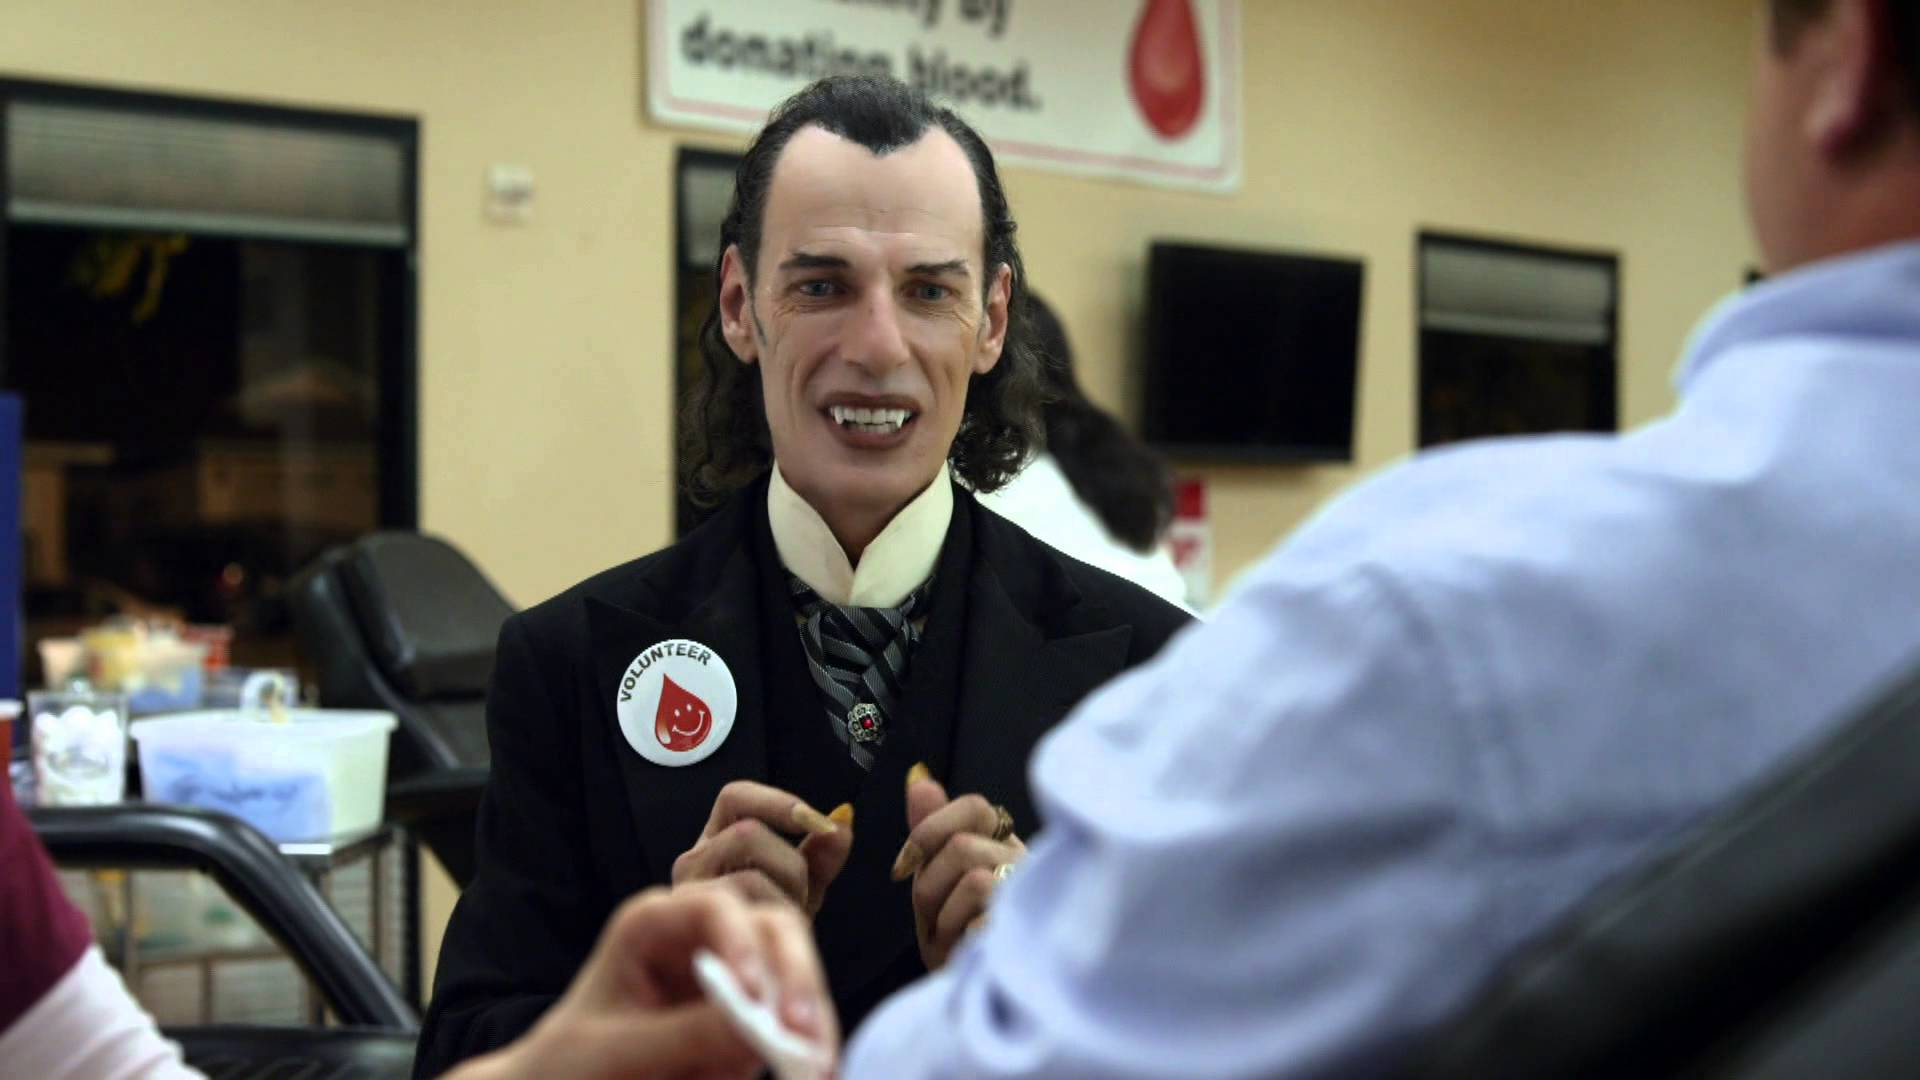 Halloween Fun Fact: Vampires are mythical beings who defy death by sucking the blood of humans.